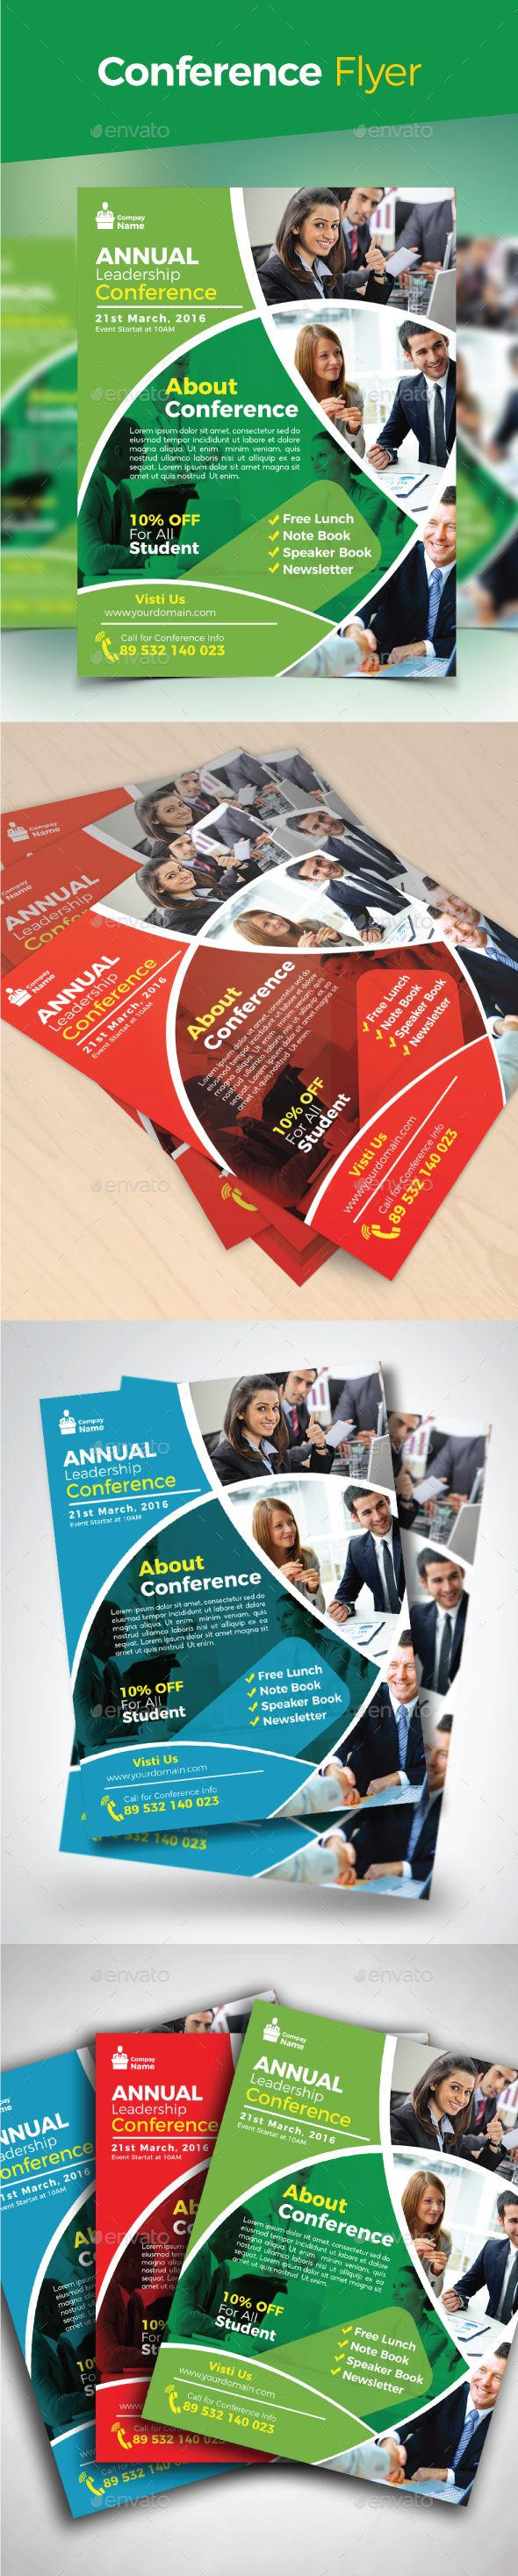 Conference Flyer  Ai Illustrator Flyer Template And Illustrators